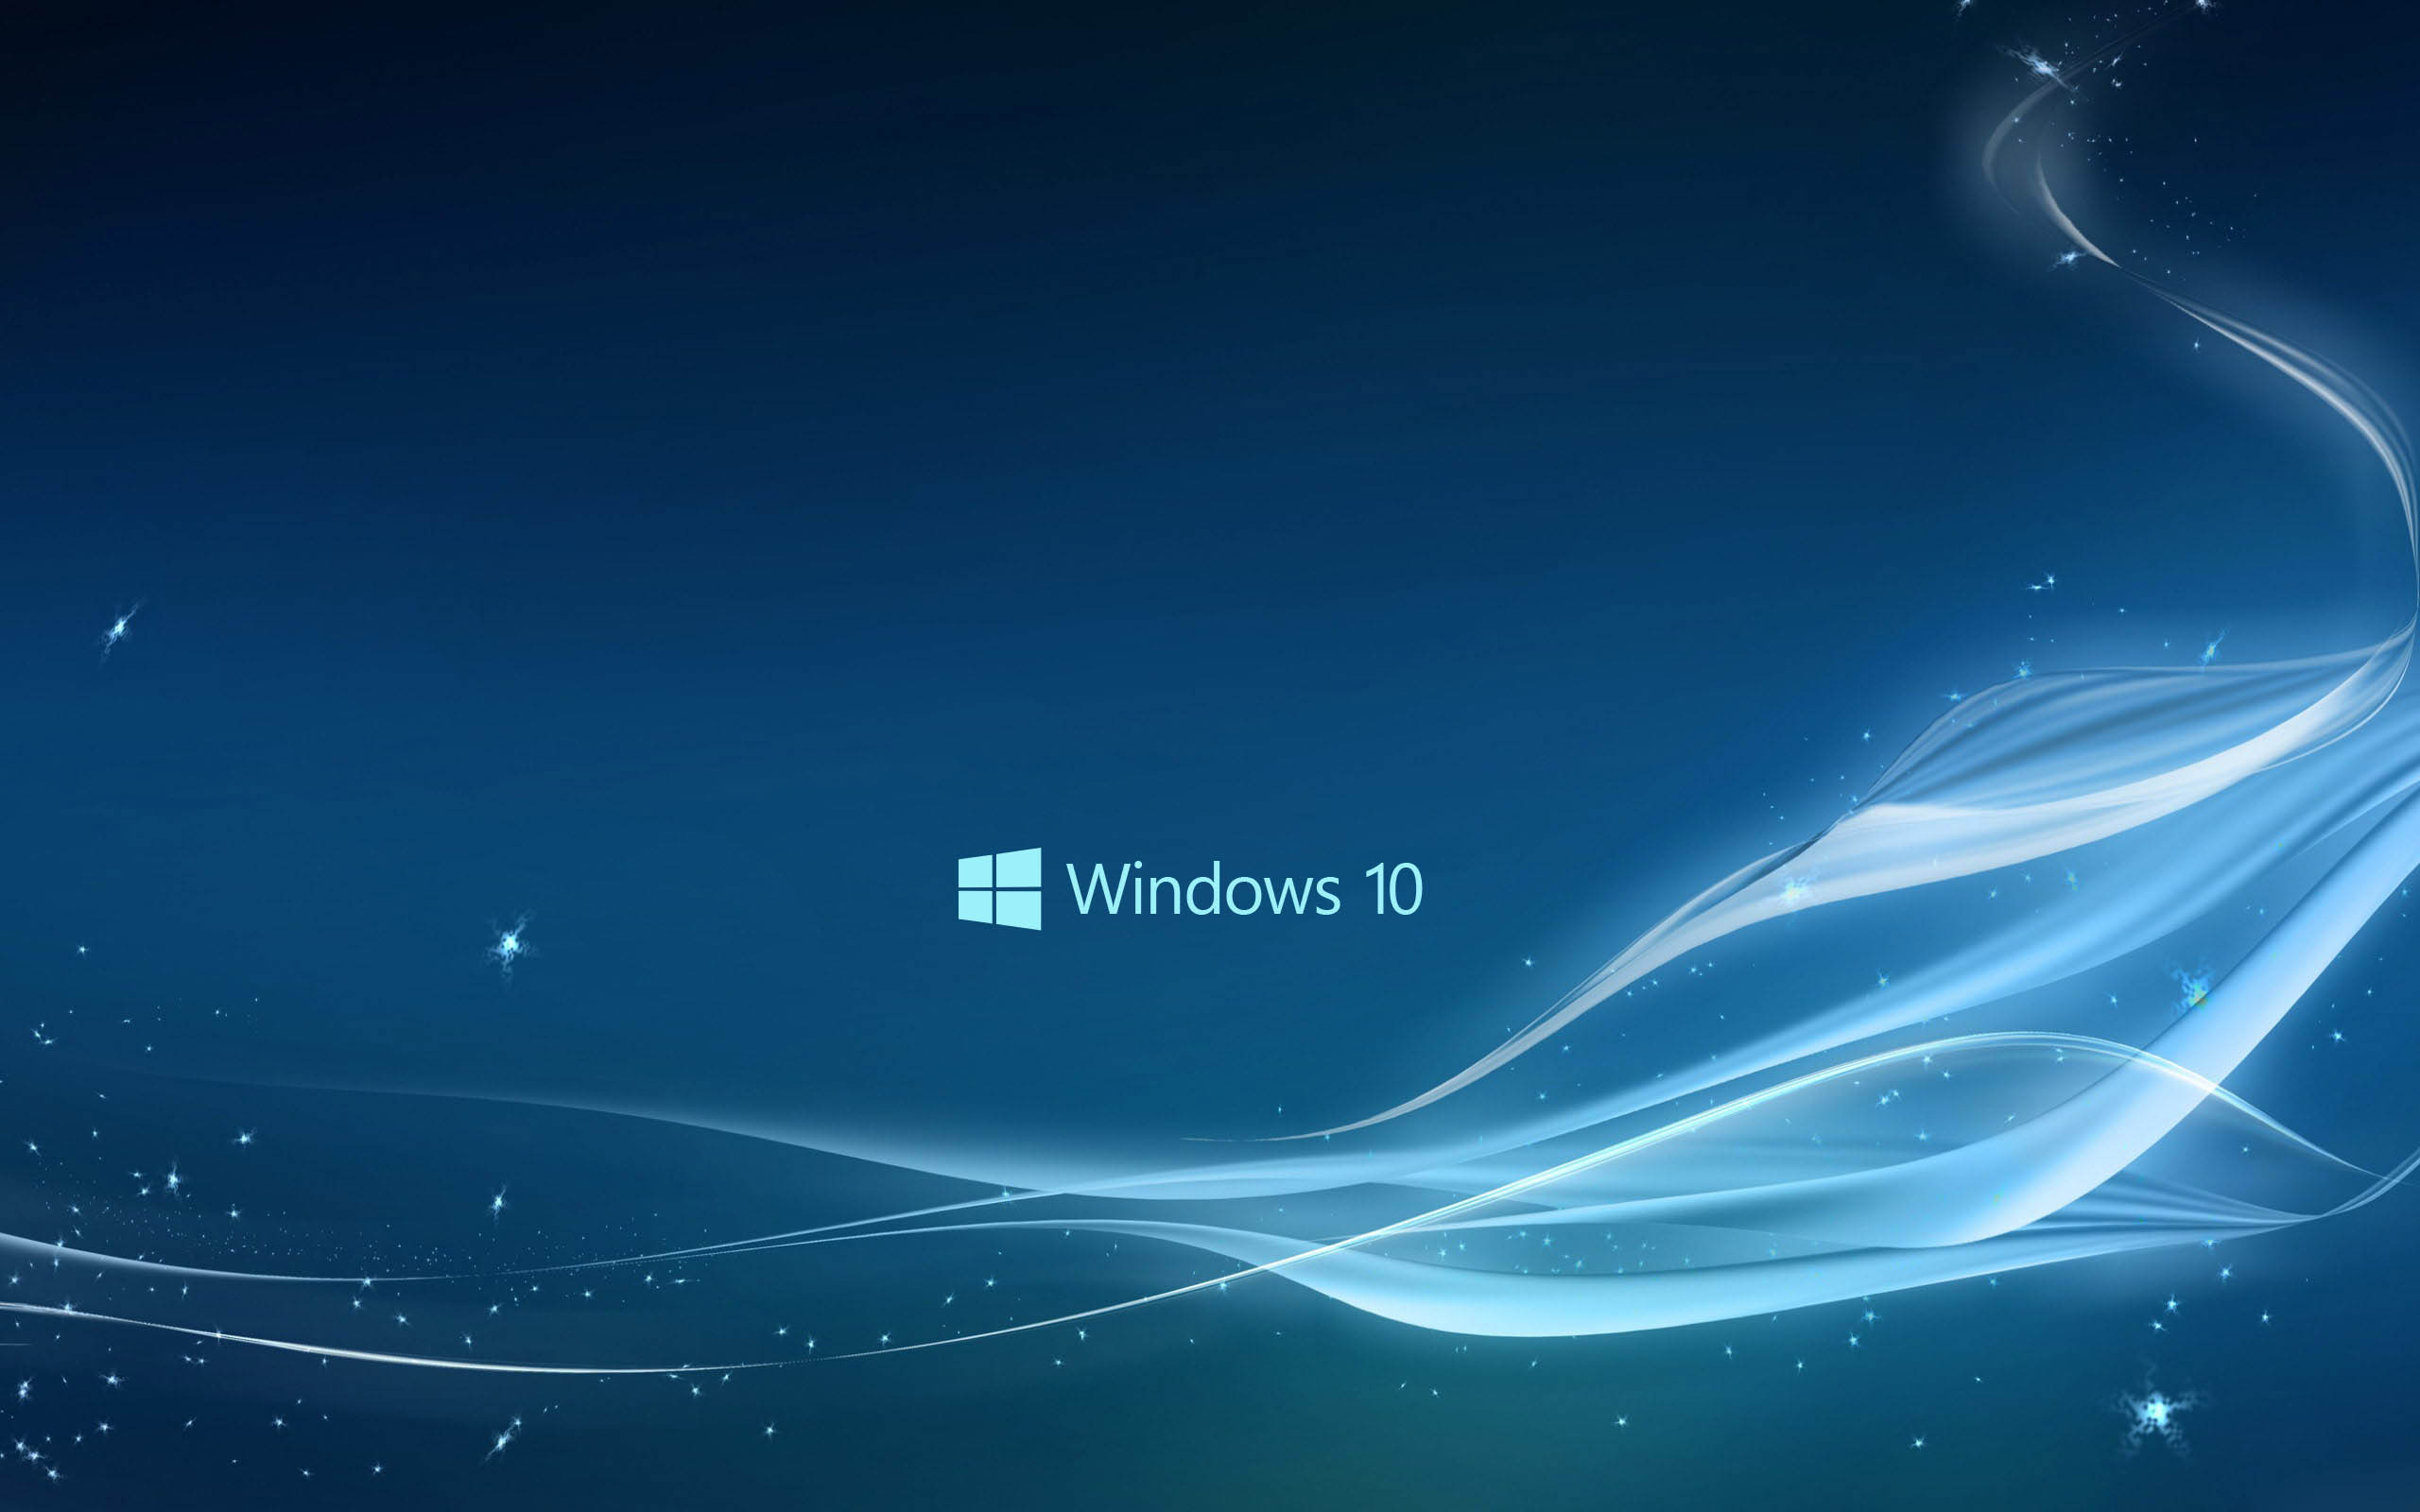 Fondo de escritorio windows 10 im genes taringa for Fondos de escritorio navidenos